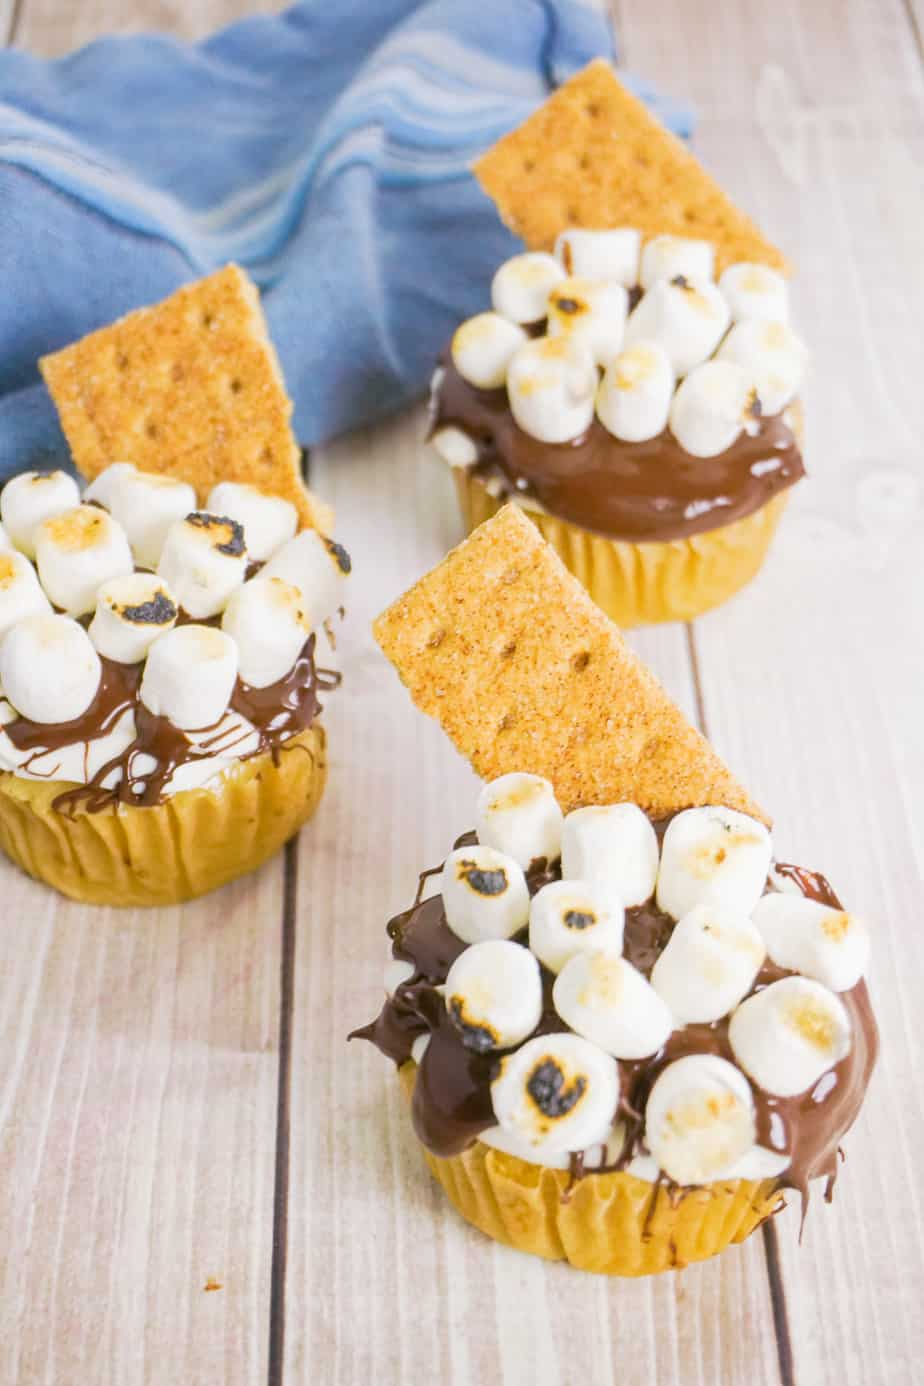 three cupcakes frosted with chocolate frosting topped with marshmallows and a graham cracker on a wood background with a muffin tin and blue linen in the background